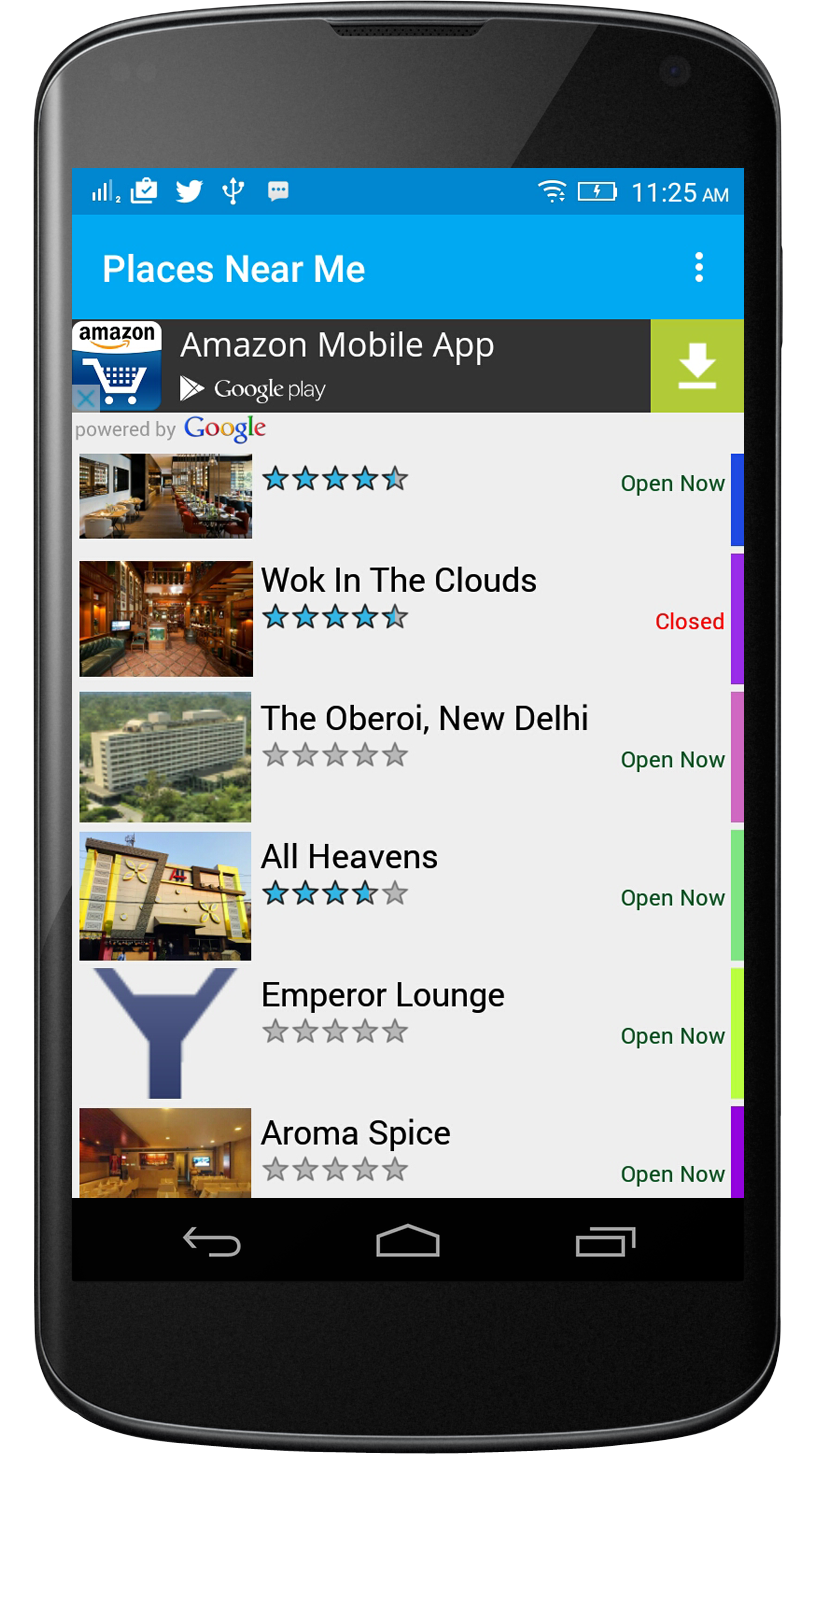 Place Near Me Android App